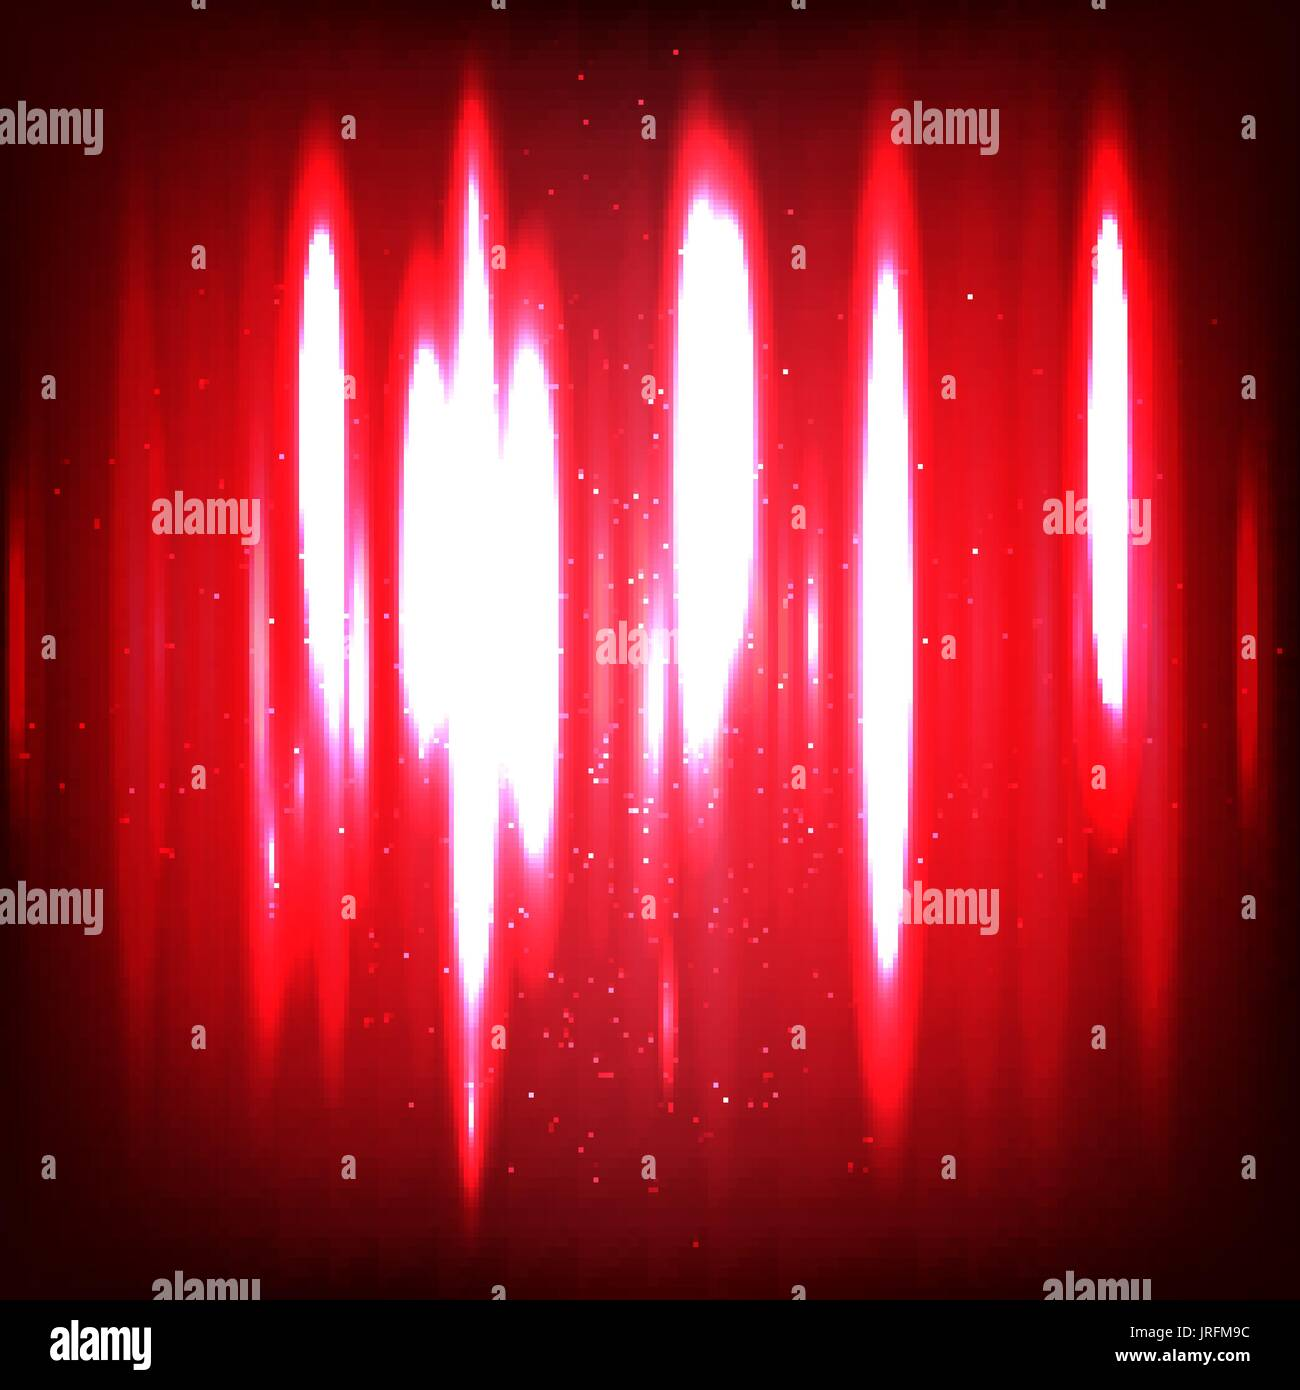 Abstract digital Sound waves with flowing particles. Cyber or technology background. - Stock Image